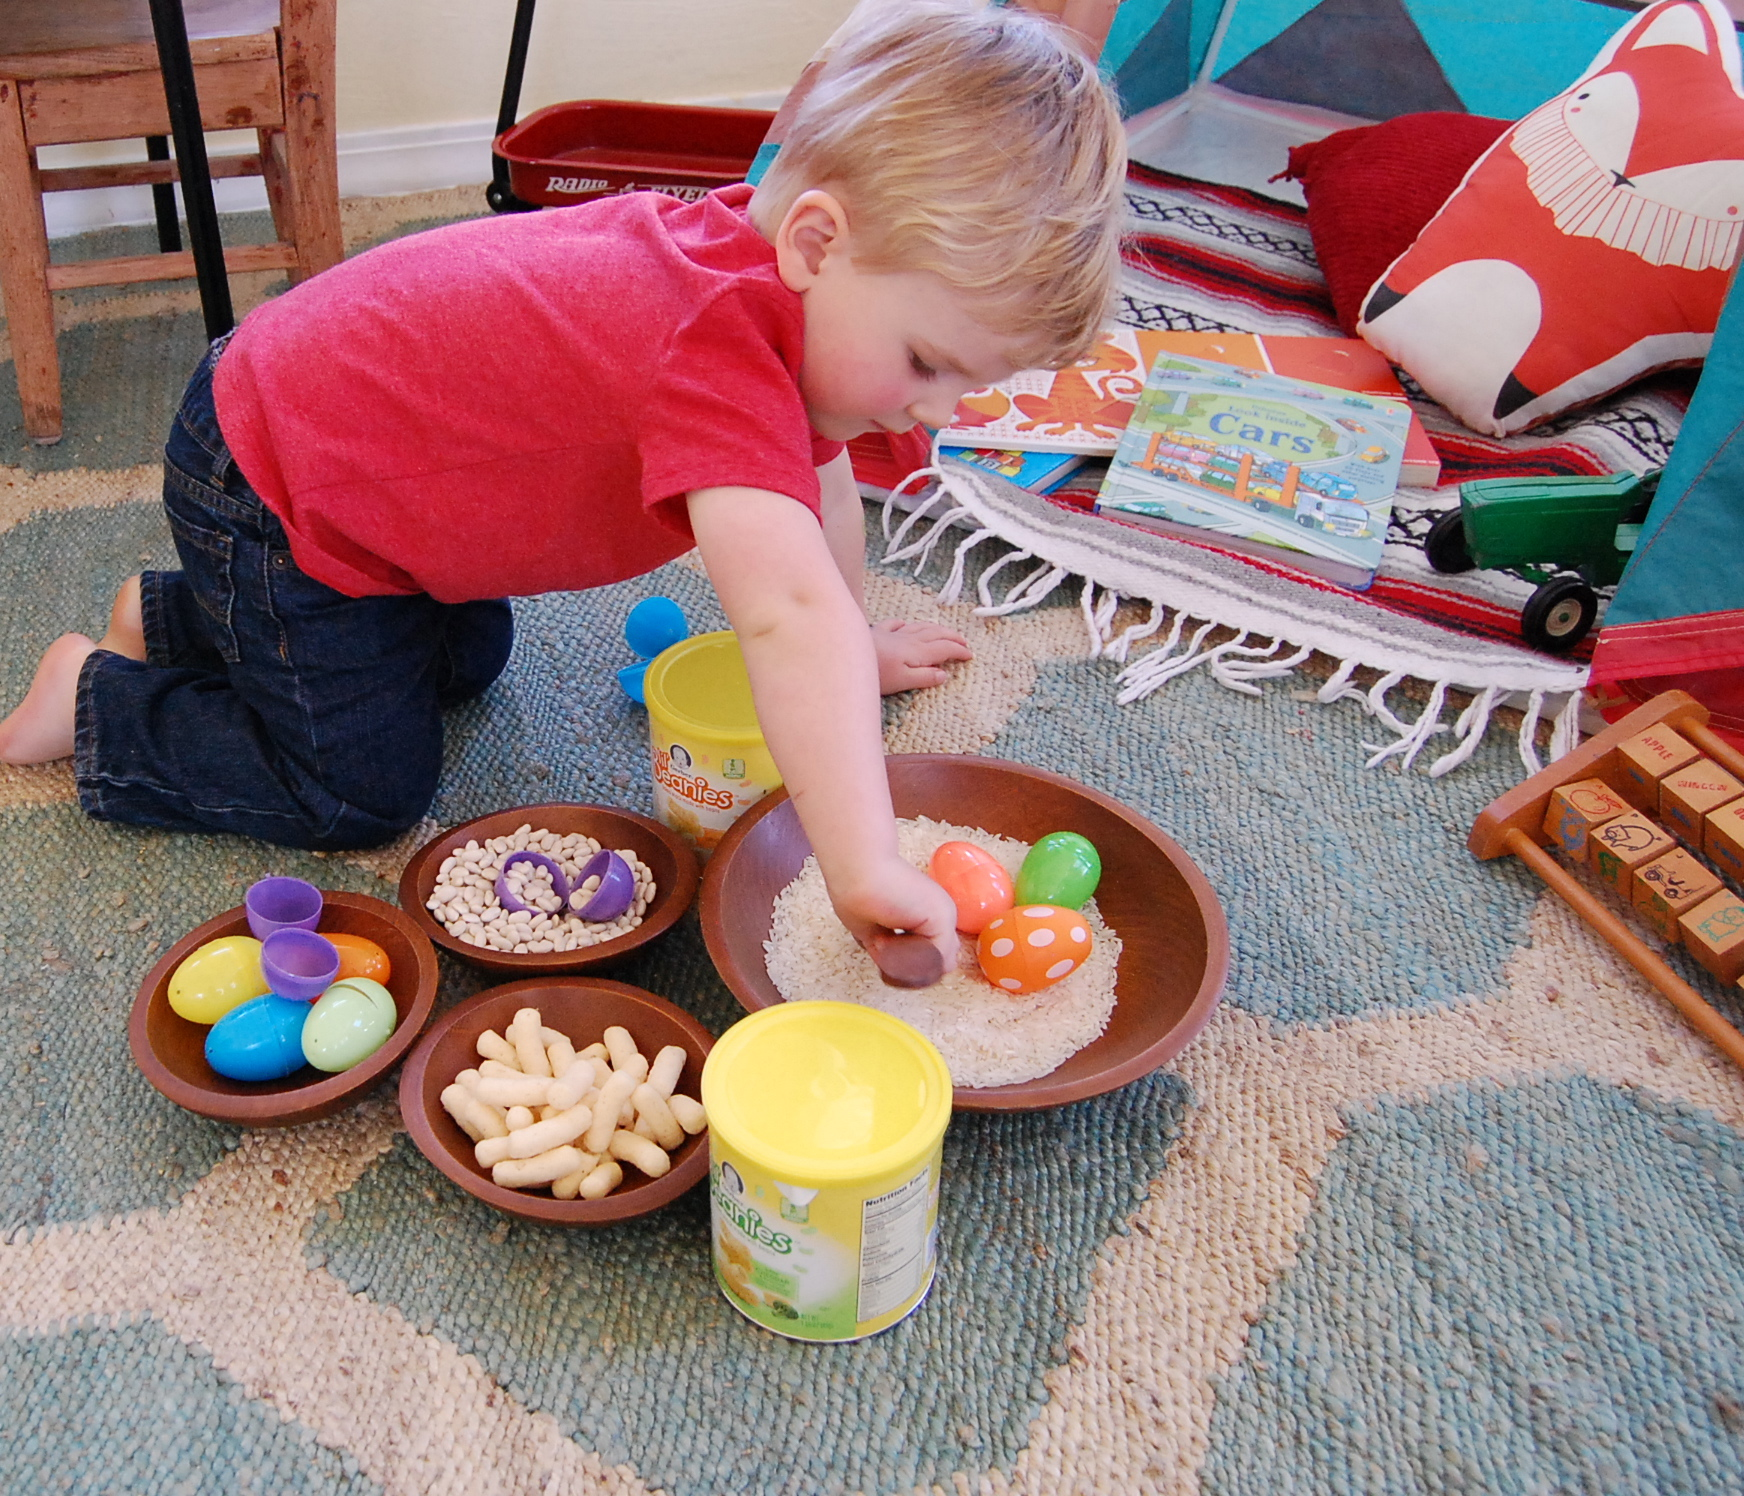 Fill empty Easter Eggs with rice, beans or both for a fun toddler sensory play activity! #toddleractivity #sensoryplay #gerberlilbeanies #toddlersnacks juliannegray.com